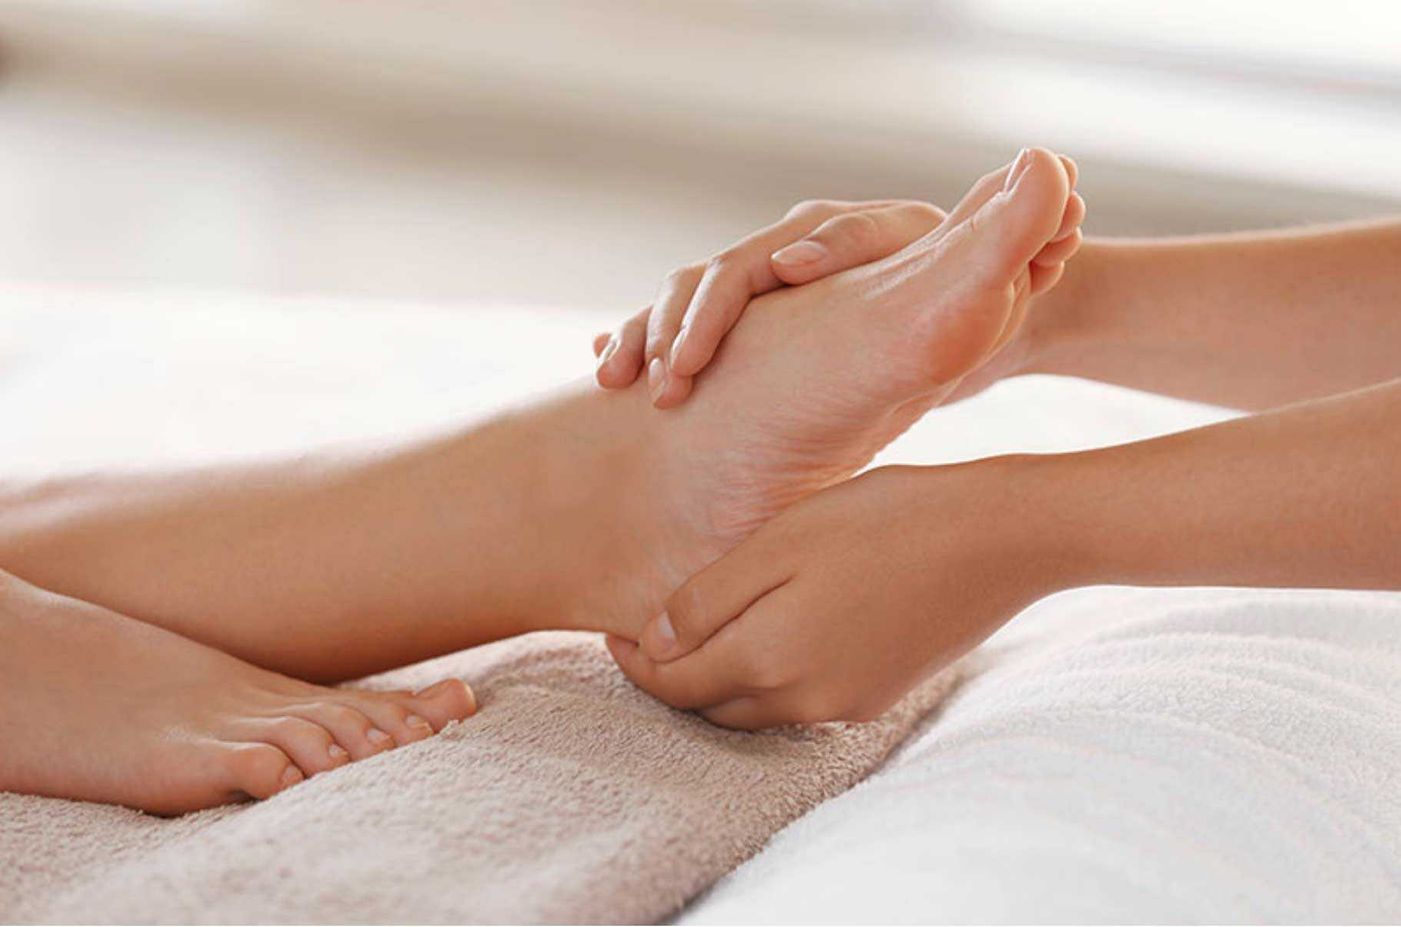 Leg massage ankle and feet massages from VIP Cosmetic Lounge Bournemouth